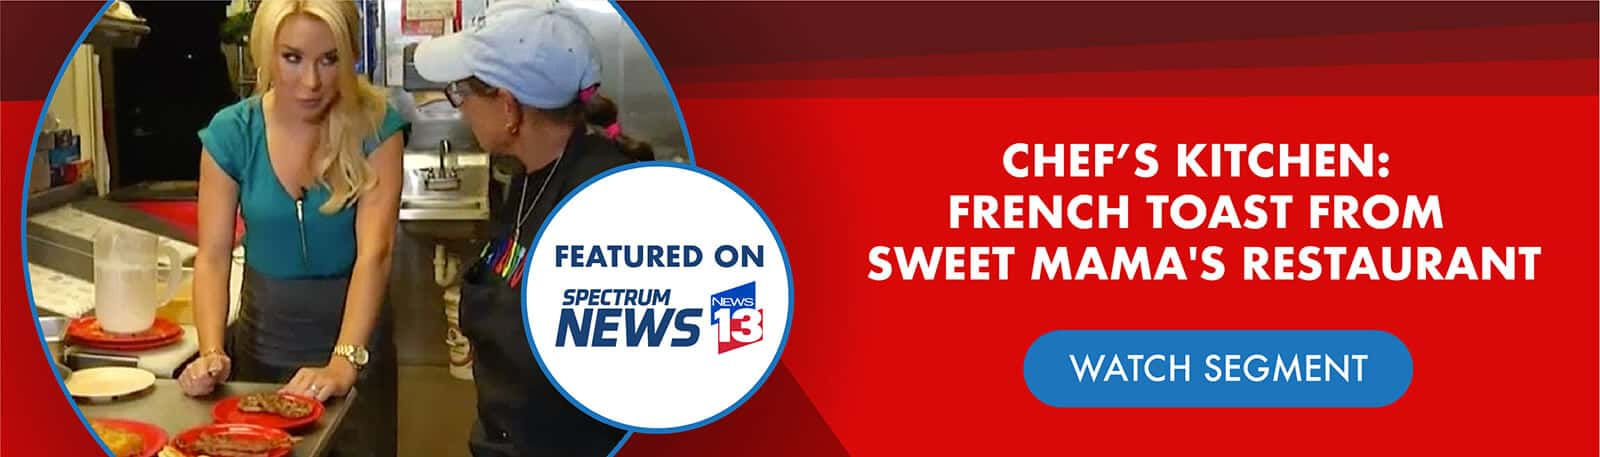 Featured on Chef's Kitchen - Spectrum News 13 [logo]